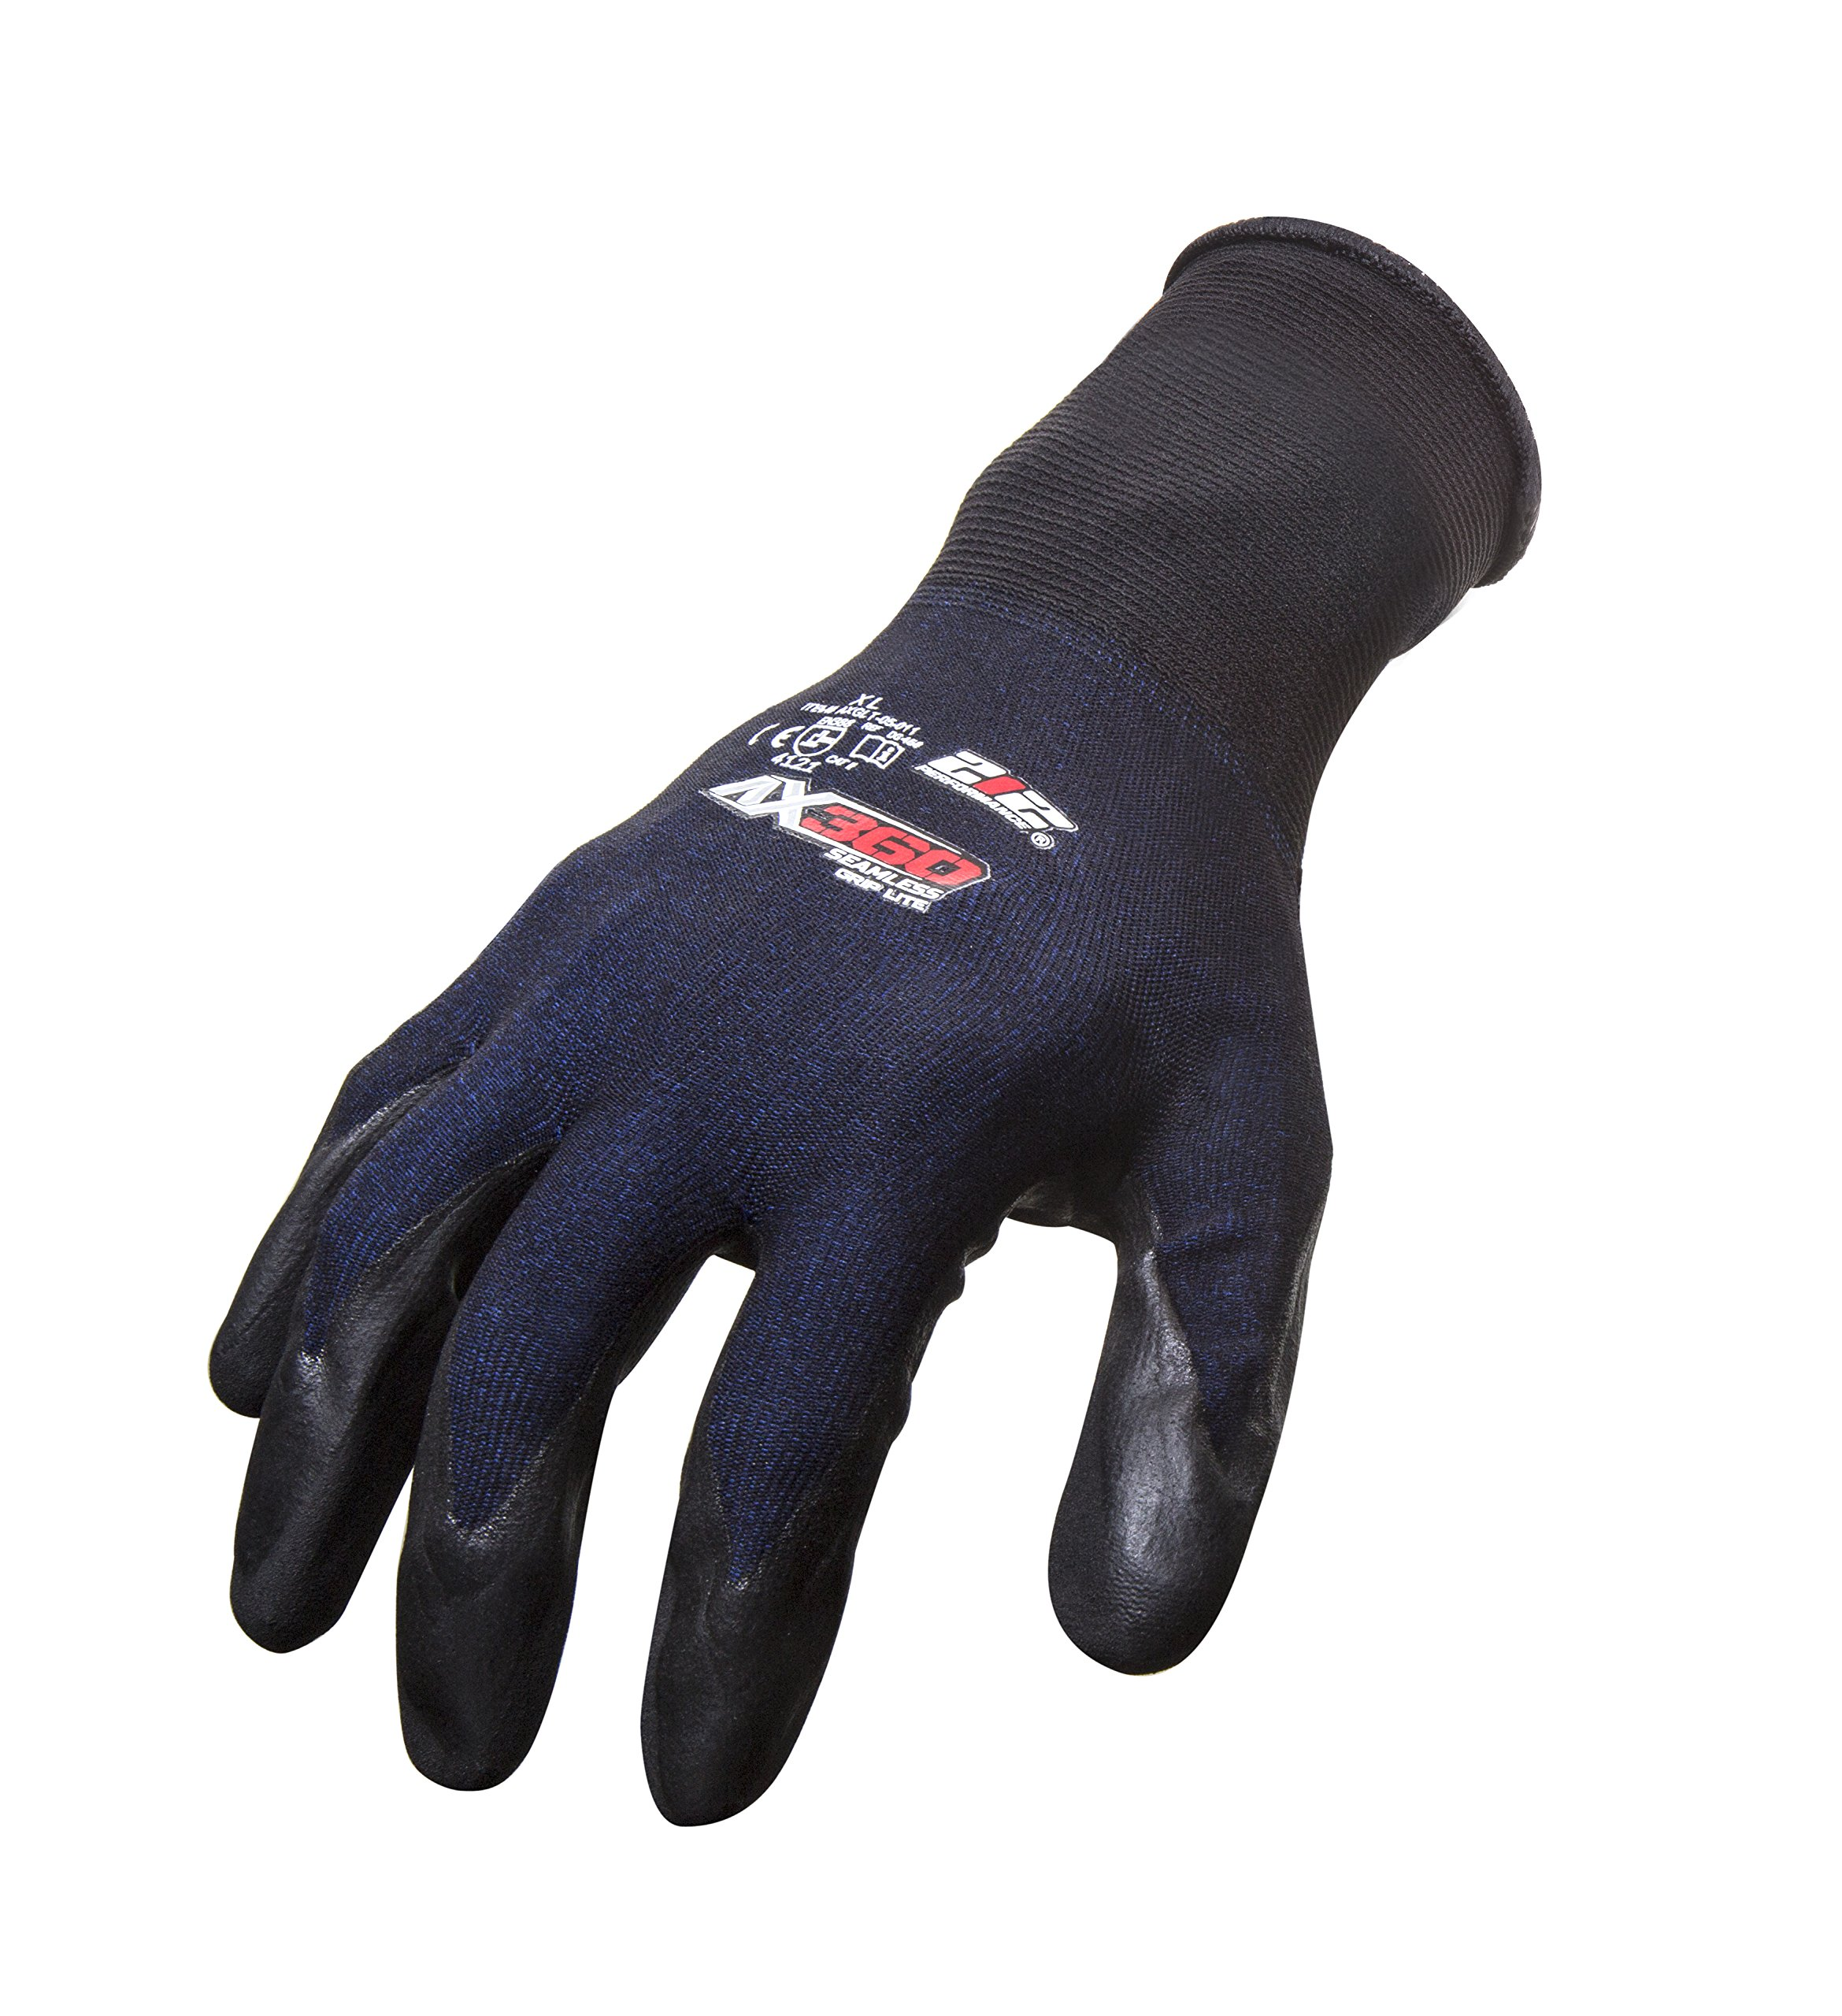 212 Performance Gloves AXGLT-05-012 AX360 Grip Lite Nitrile-dipped Work Glove, 12-Pair Bulk Pack, XX-Large by 221 Performance Gloves (Image #1)